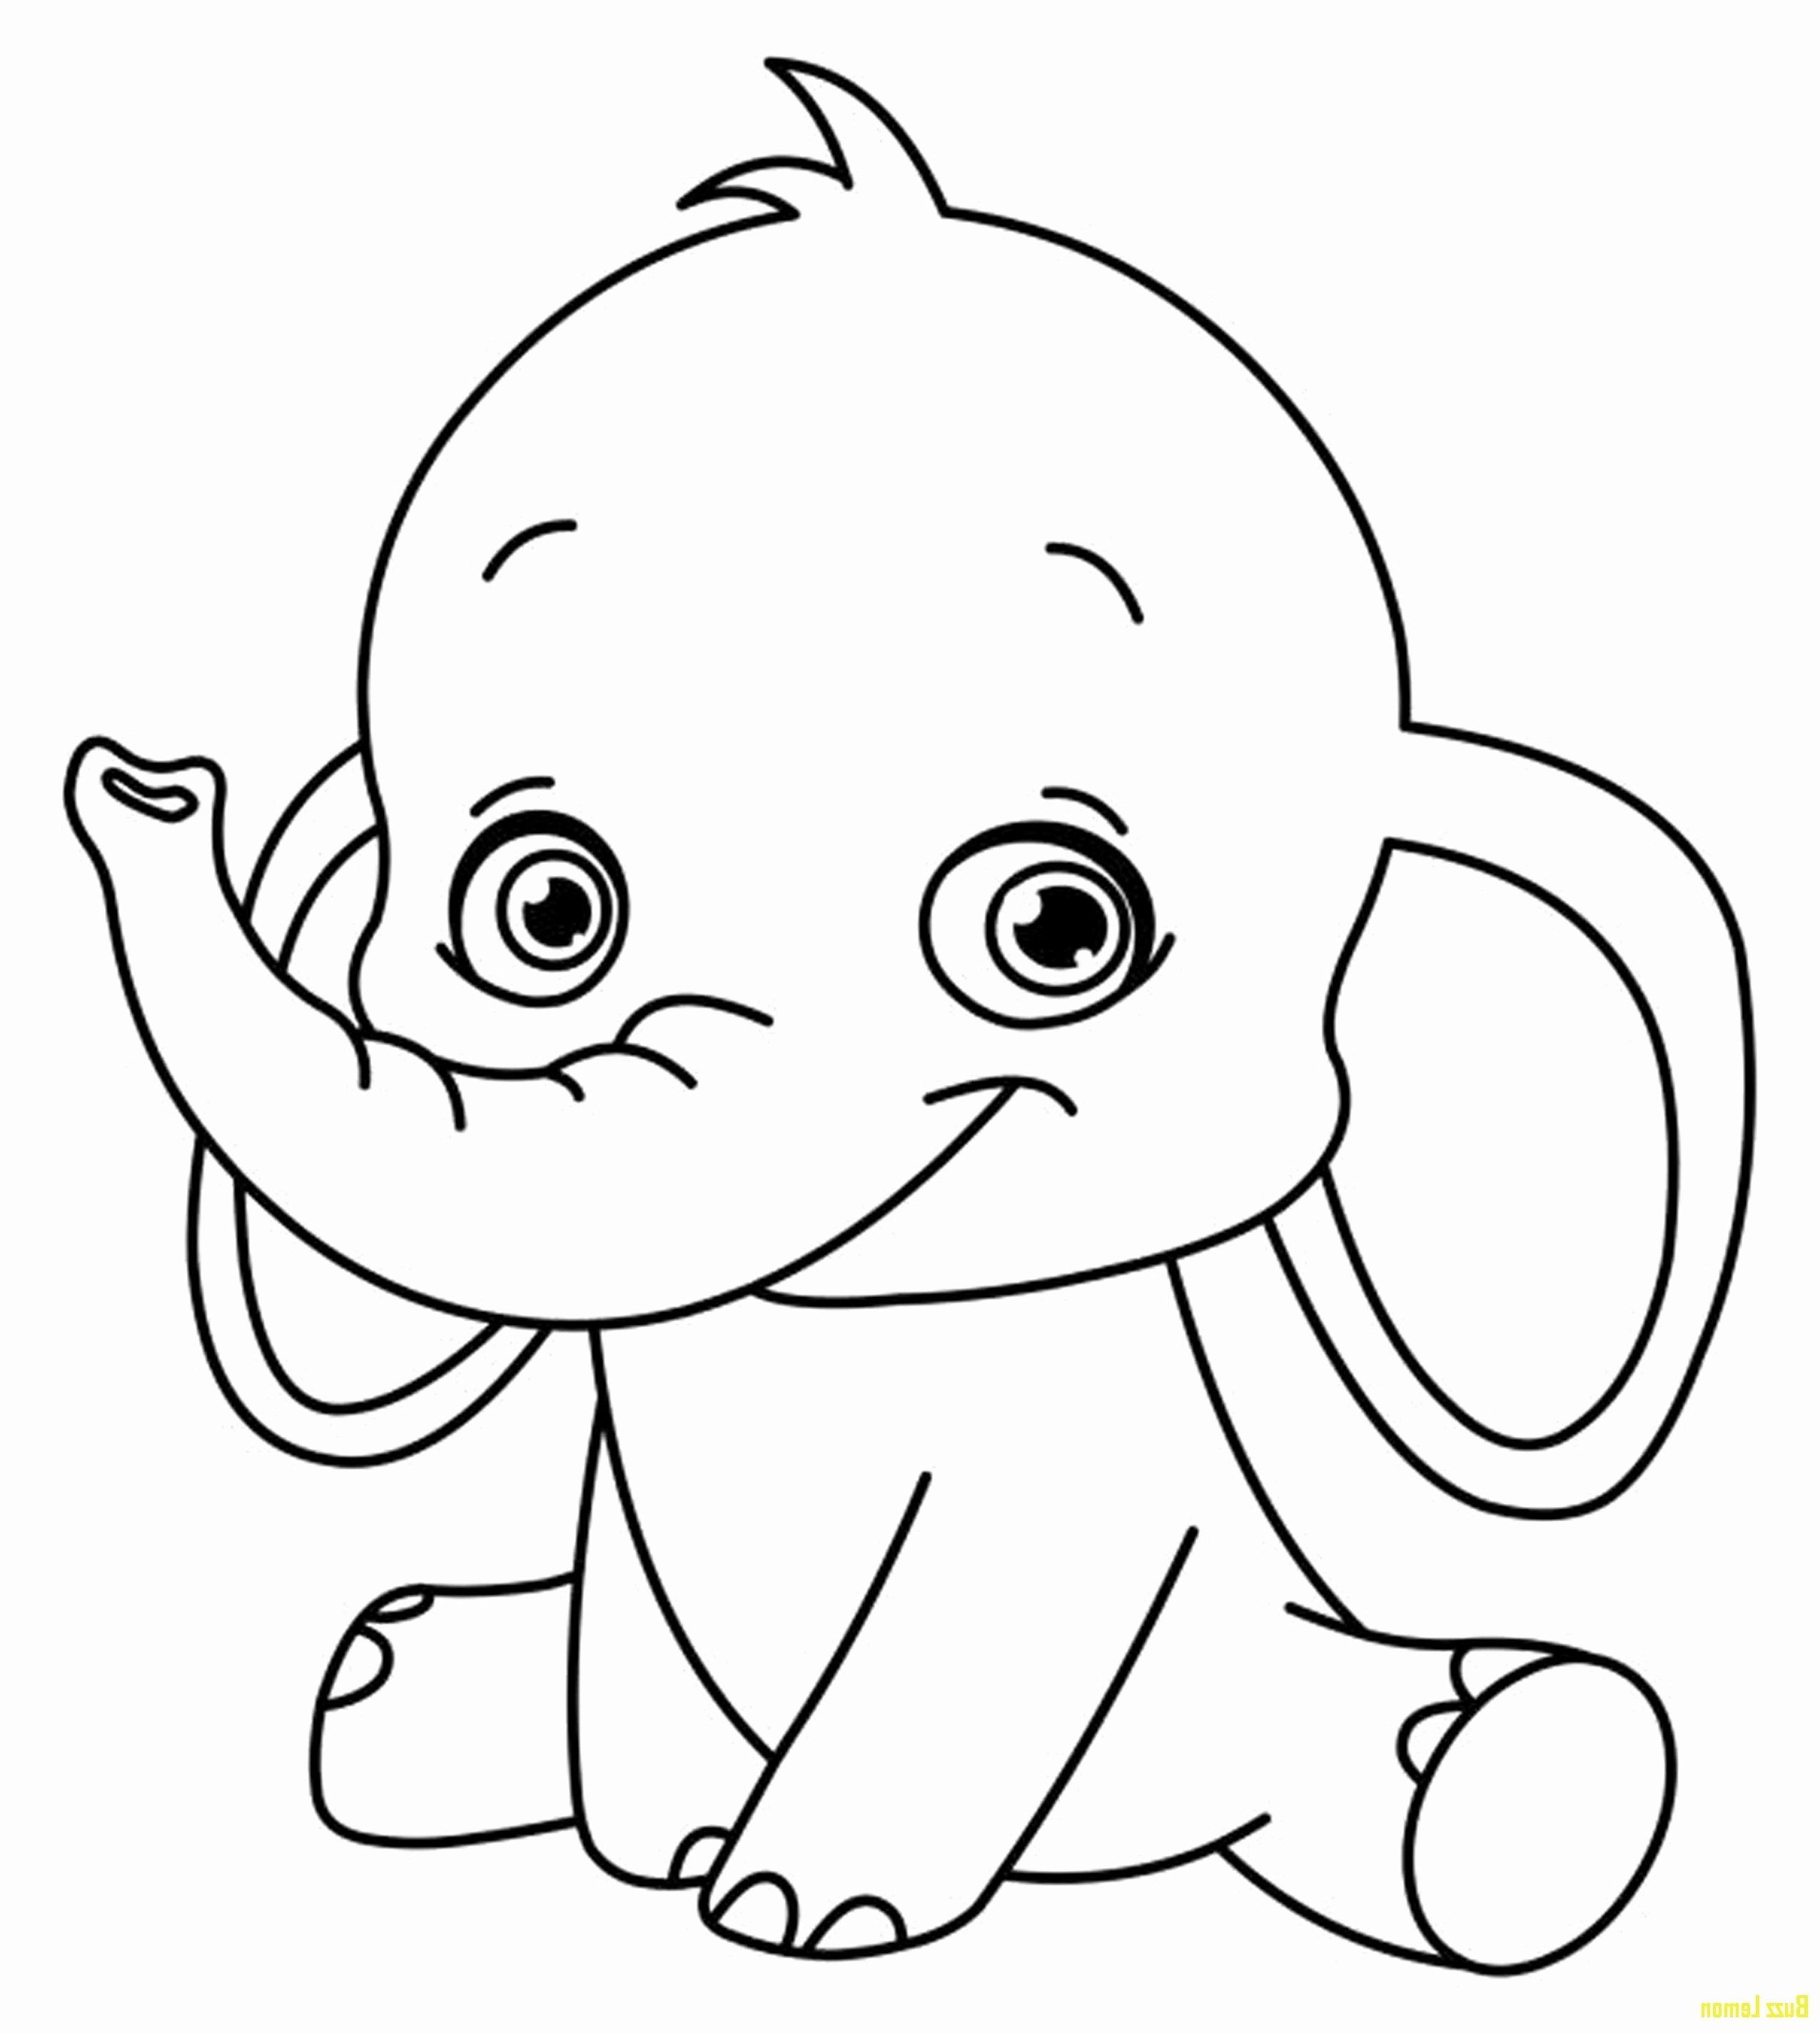 Unicorn Kitty Coloring Page Awesome Coloring Book ...